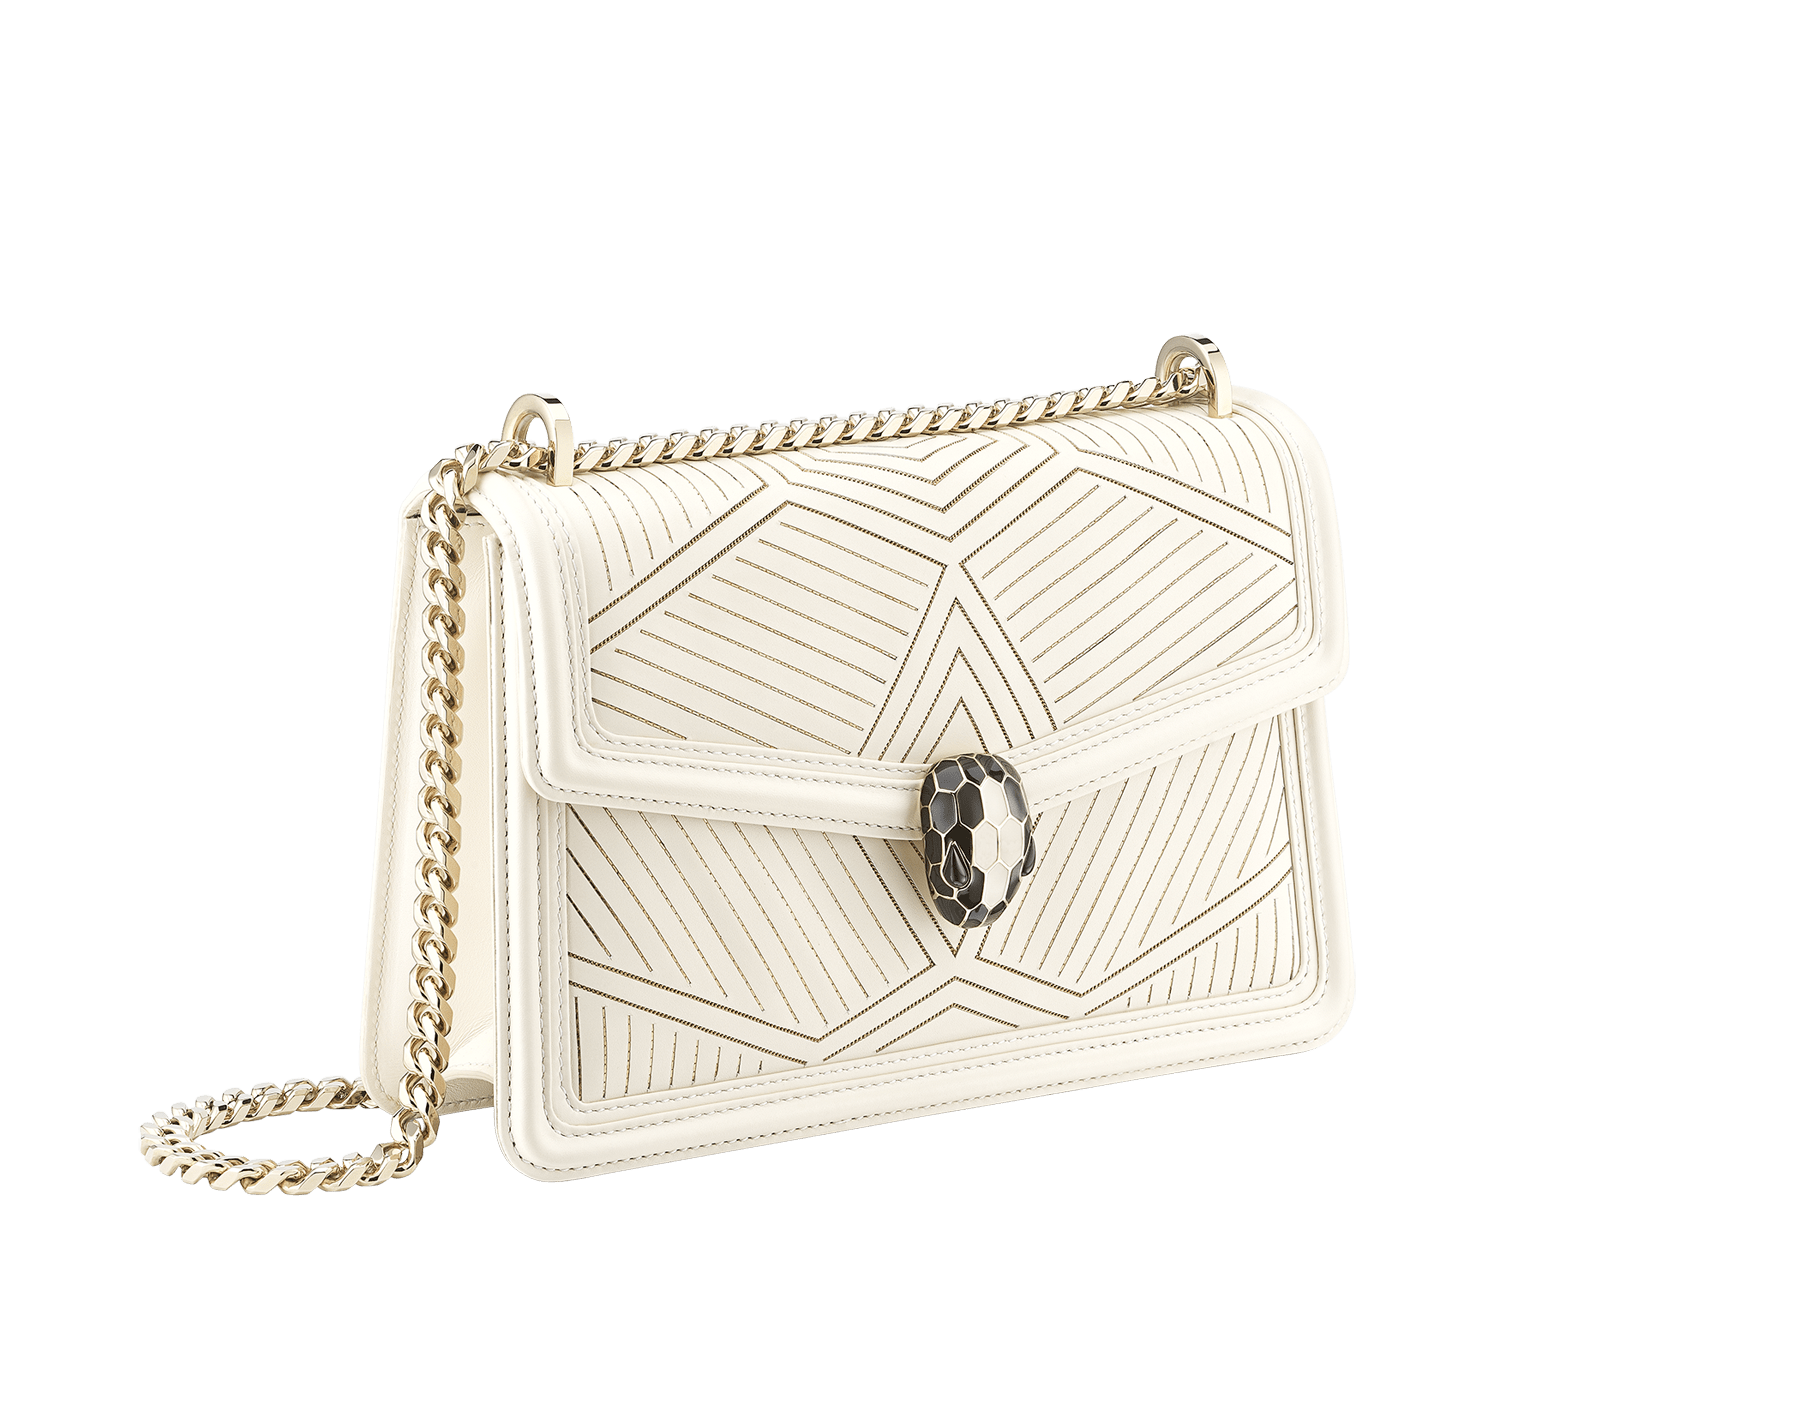 """Serpenti Diamond Blast"" shoulder bag in white agate calf leather, featuring a Whispy Chain motif in light gold finishing. Iconic snakehead closure in light gold-plated brass enriched with black and white agate enamel and black onyx eyes. 288984 image 2"